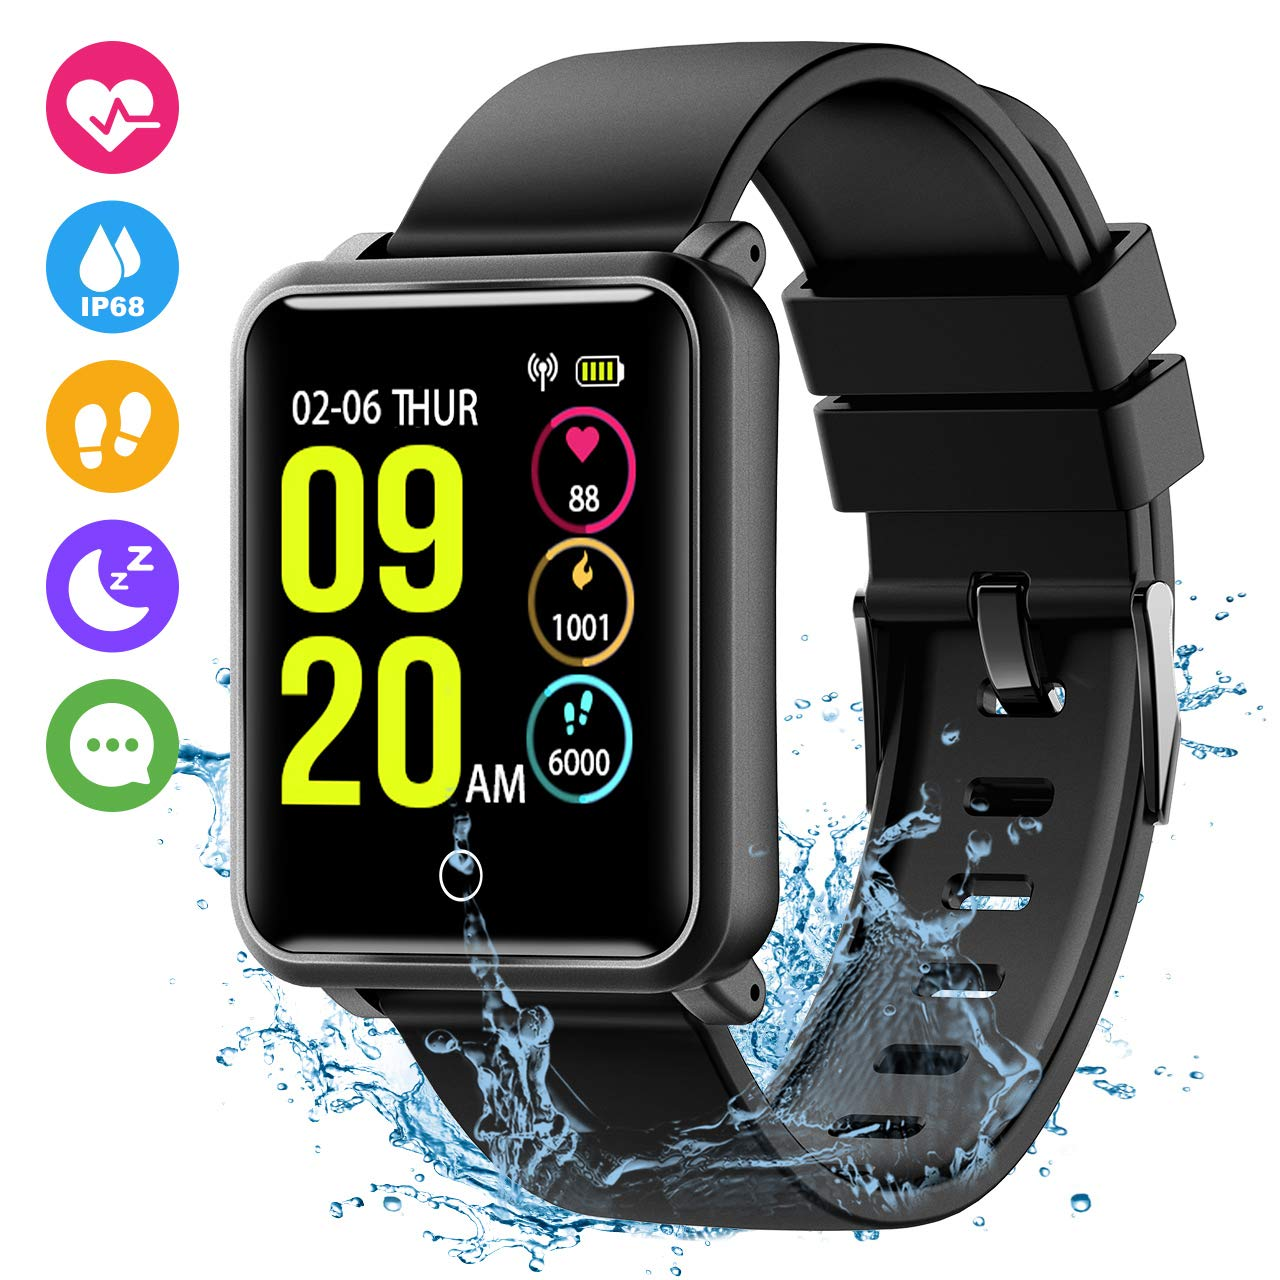 Seneo Fitness Watch, Waterproof IP68 Smartwatch